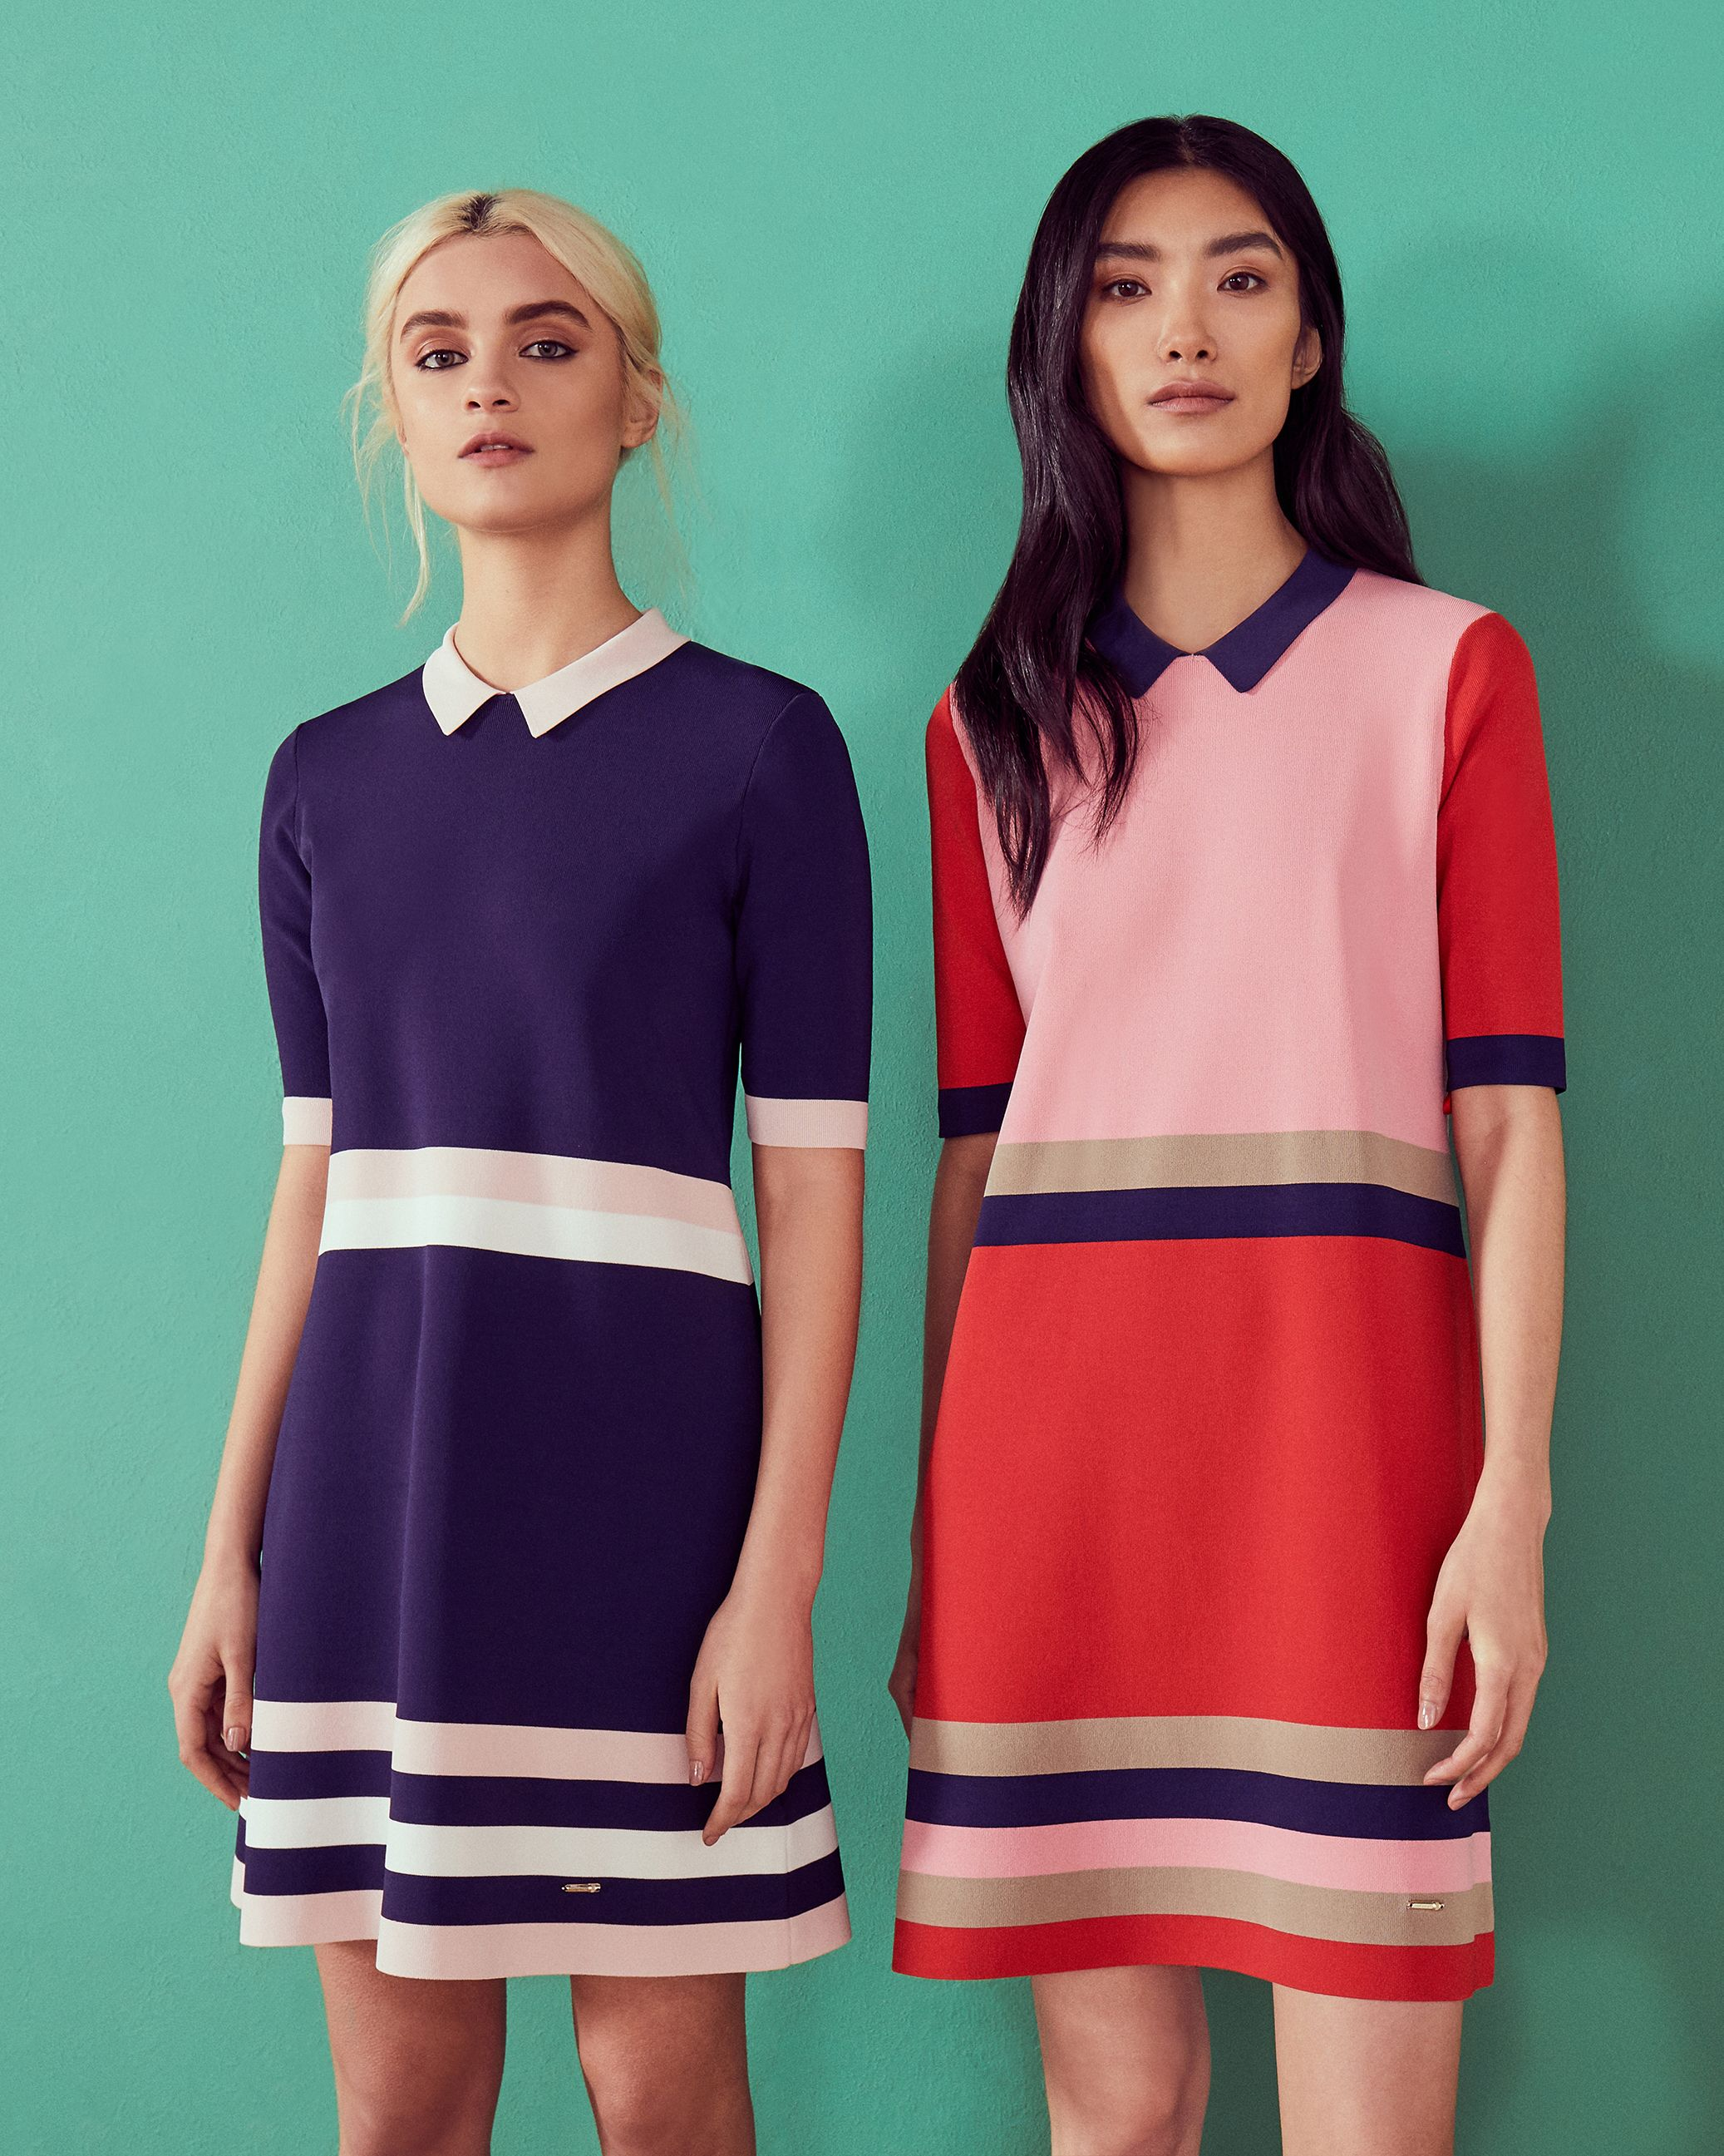 d02377d44 SHOP CBN  Get your wardrobe summer ready and step up your style in Ted s  ORIGAMI vibrant colour block knitted dress.